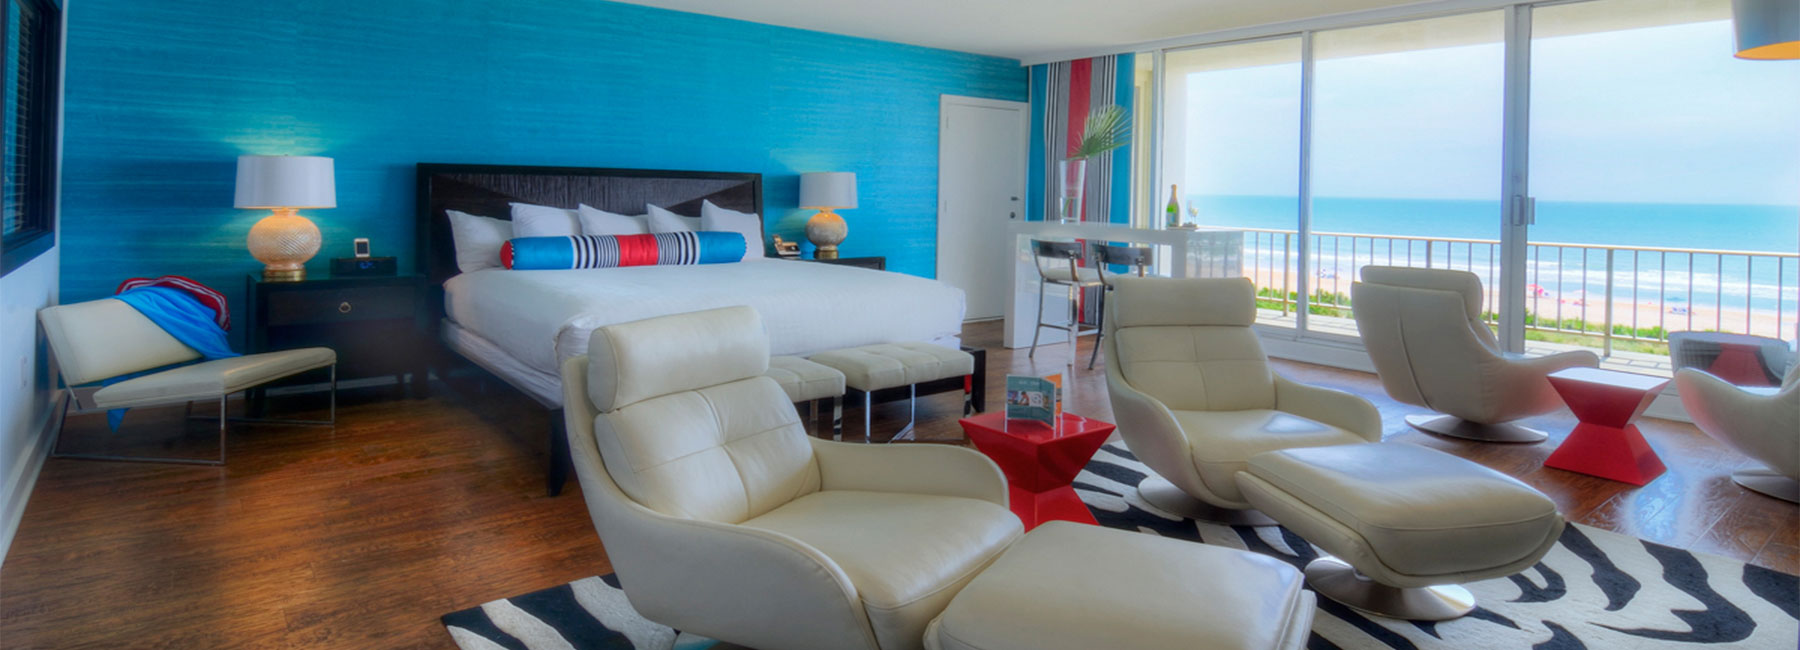 Oceanfront Stateroom | Rooms and Suites at Blockade Runner